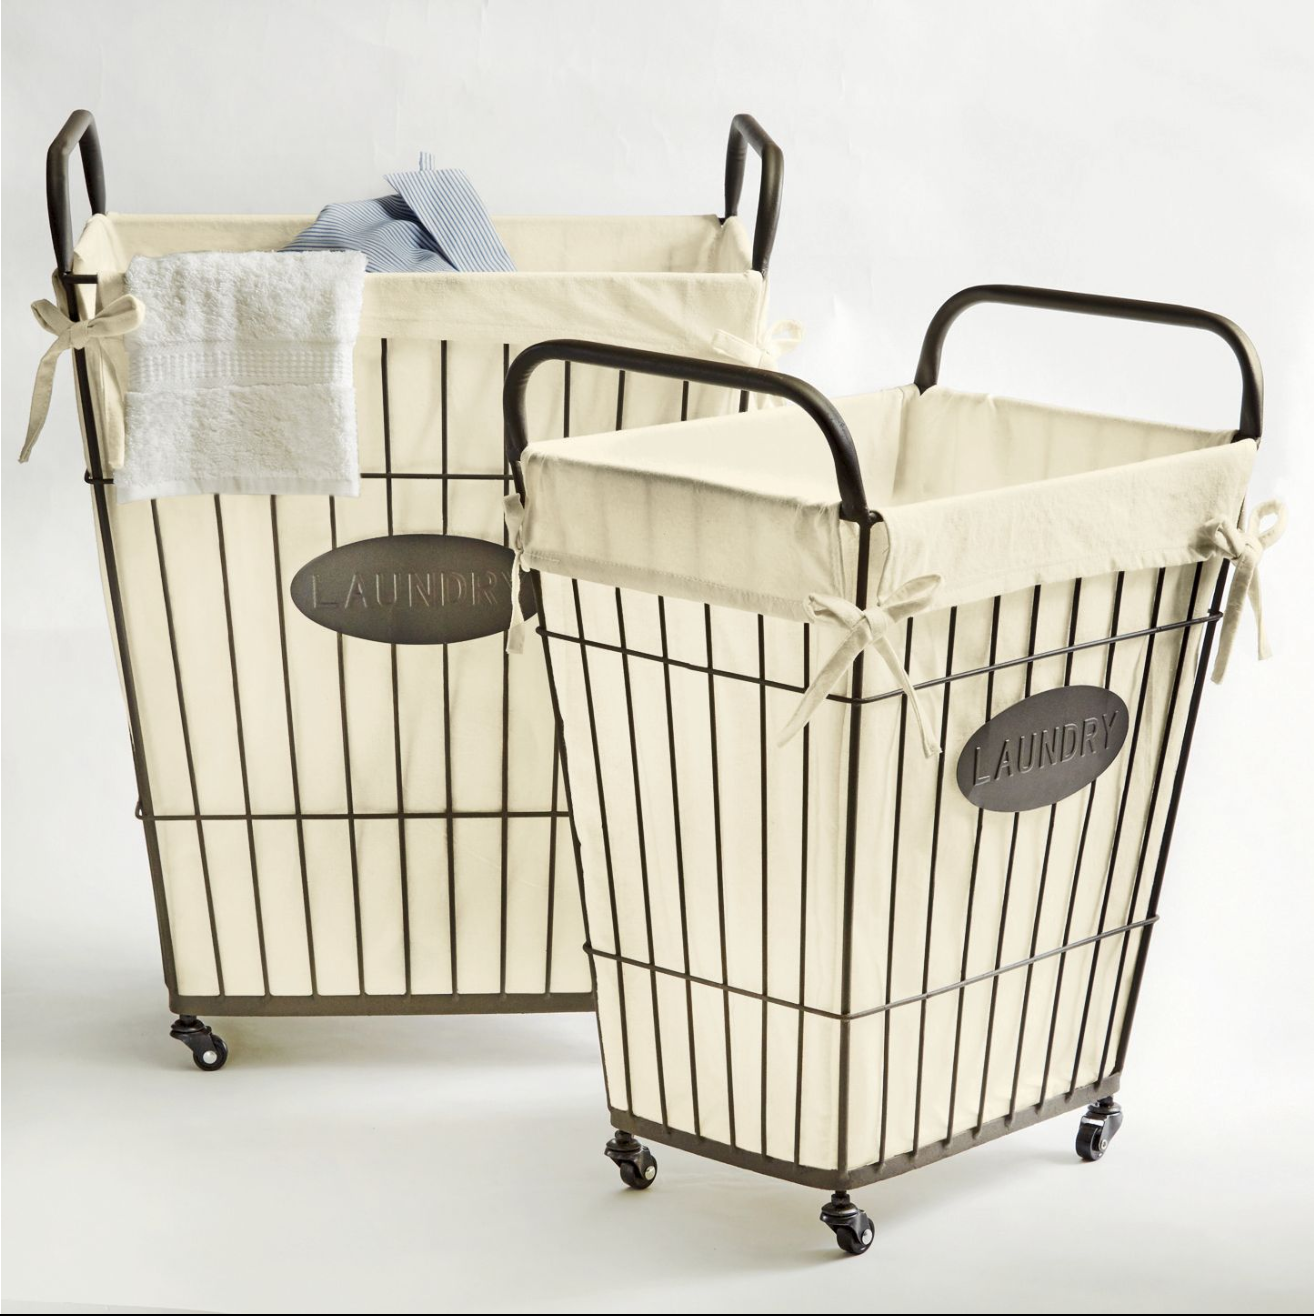 10 Bathroom Organization Ideas Wire Laundry Basket Large